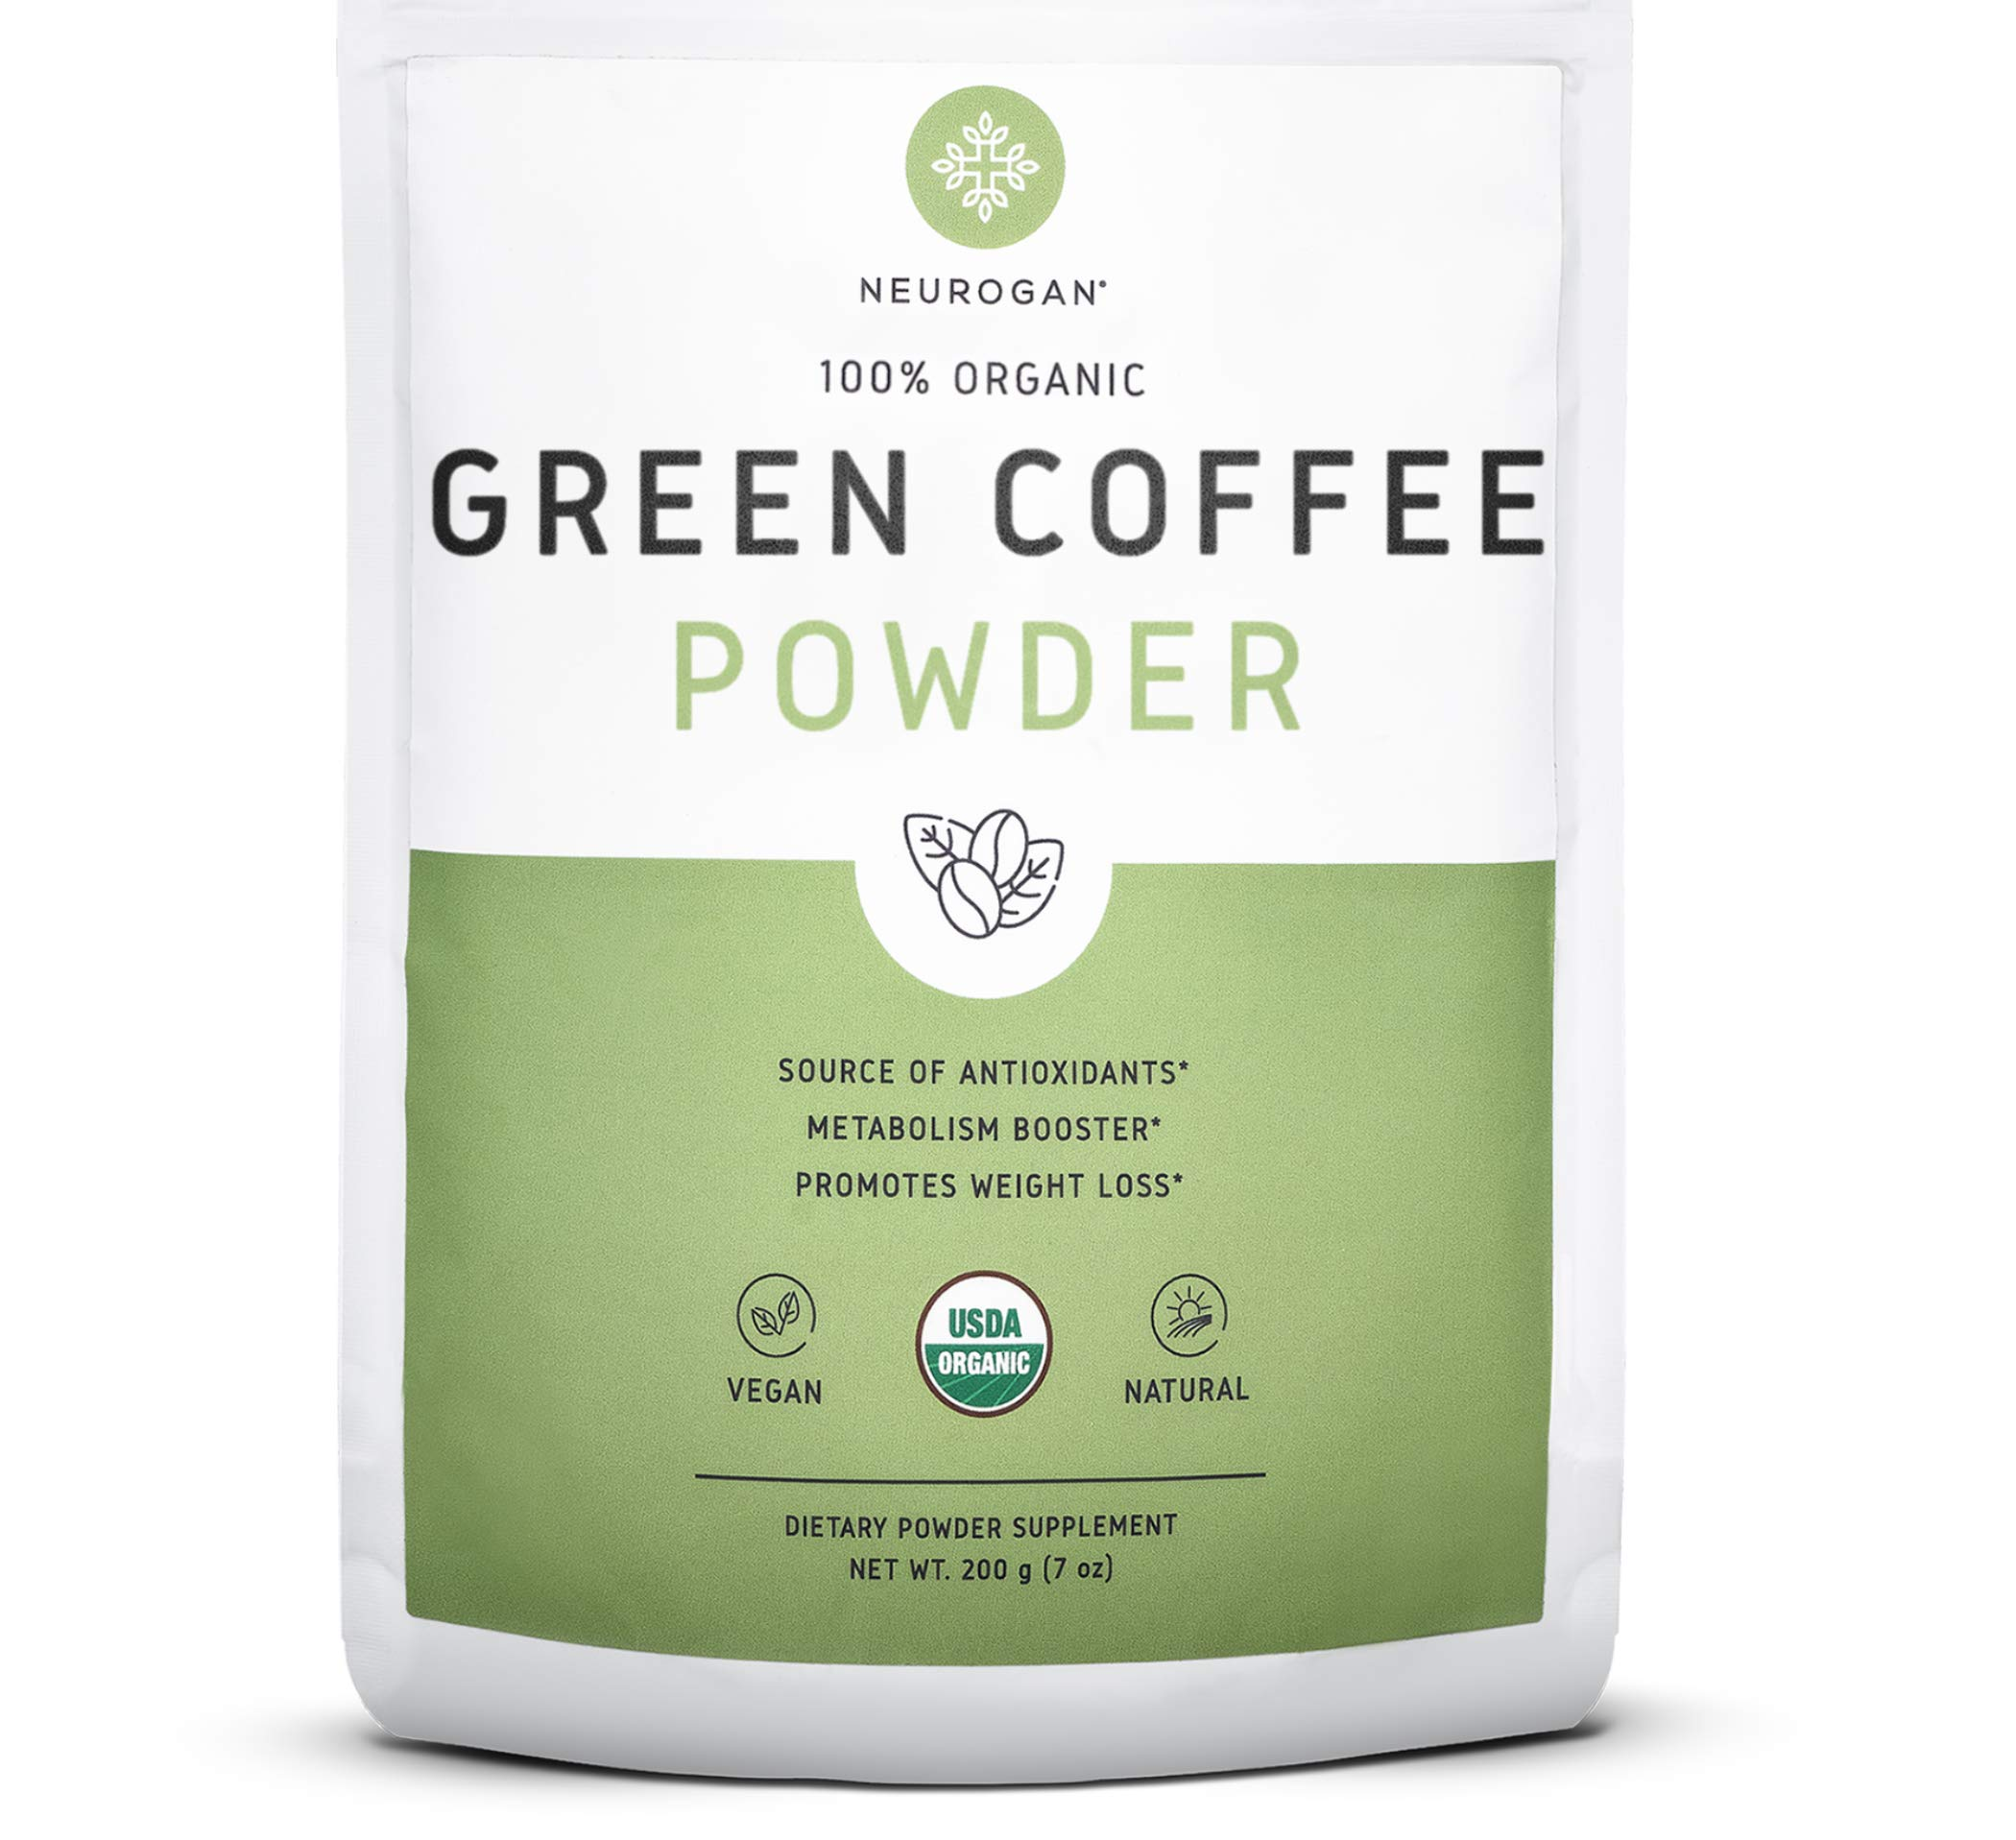 Neurogan Green Coffee Bean Powder 200g - Organic Pure Extract for Metabolism Boost, Potent Weight Loss Management, Overall Health Improvement, and Aging Prevention, Non-GMO and Vegan Friendly by Neurogan